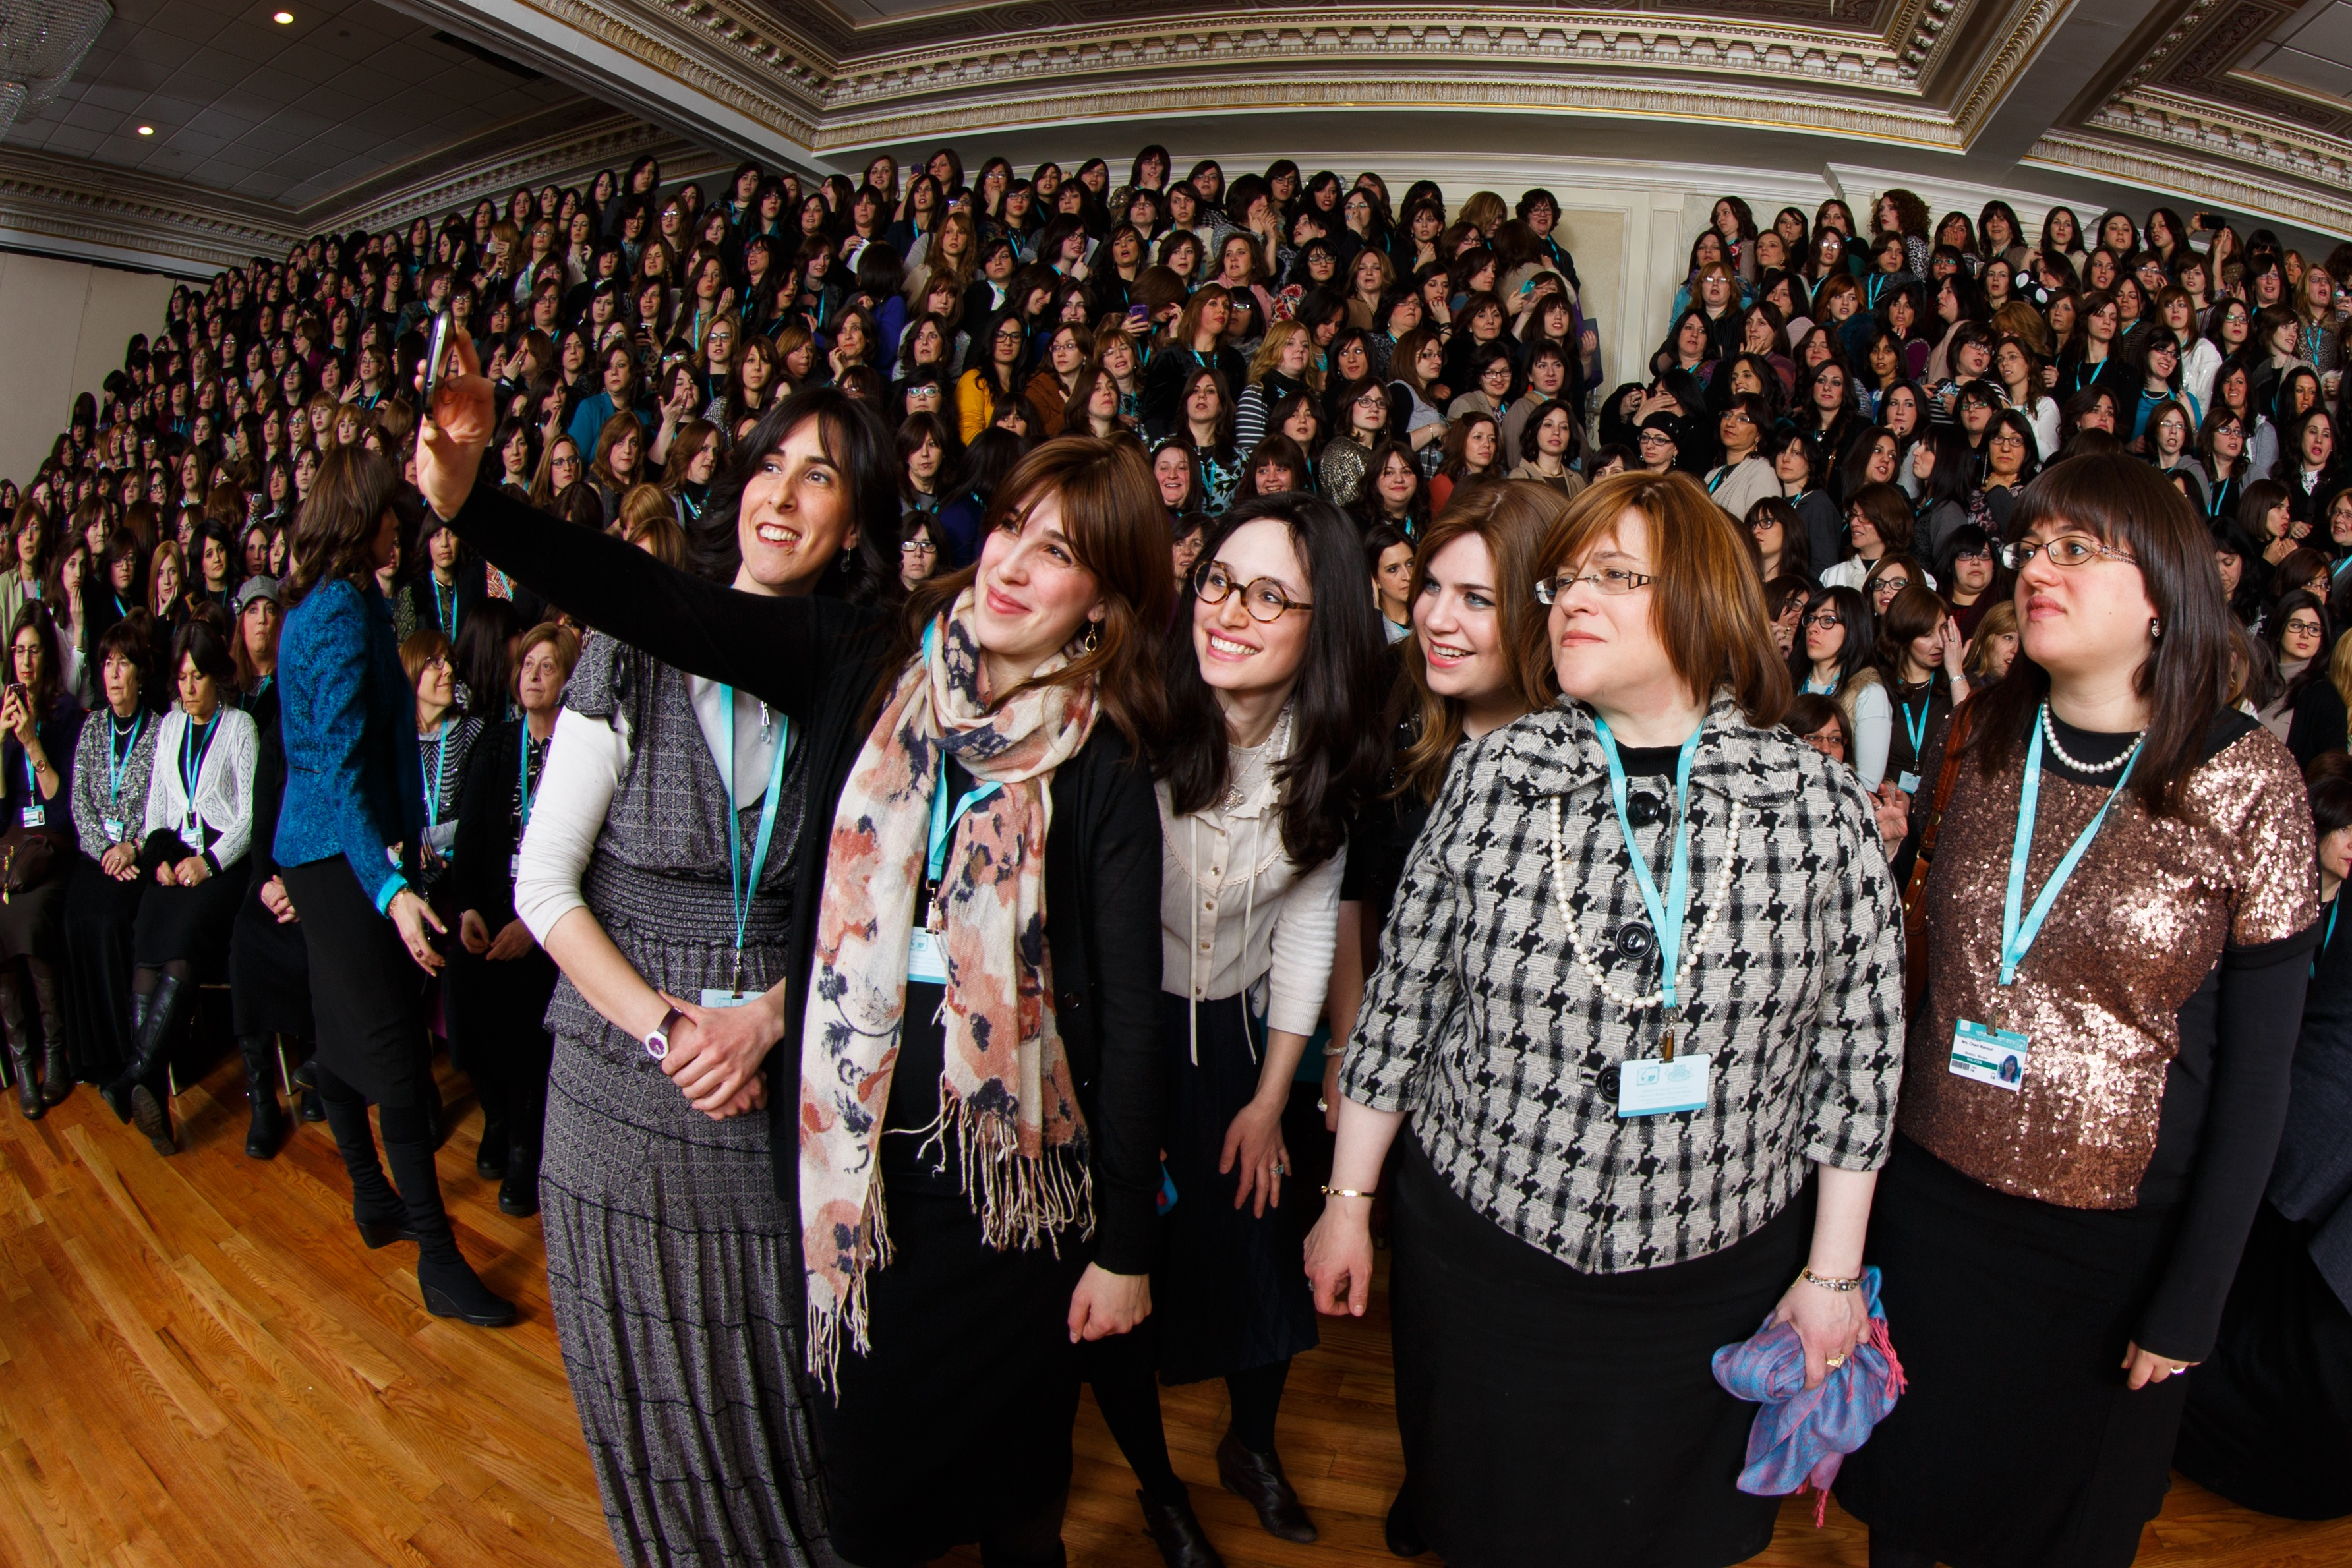 Thousands Of Jewish Women Gather For Hasidic Conference In